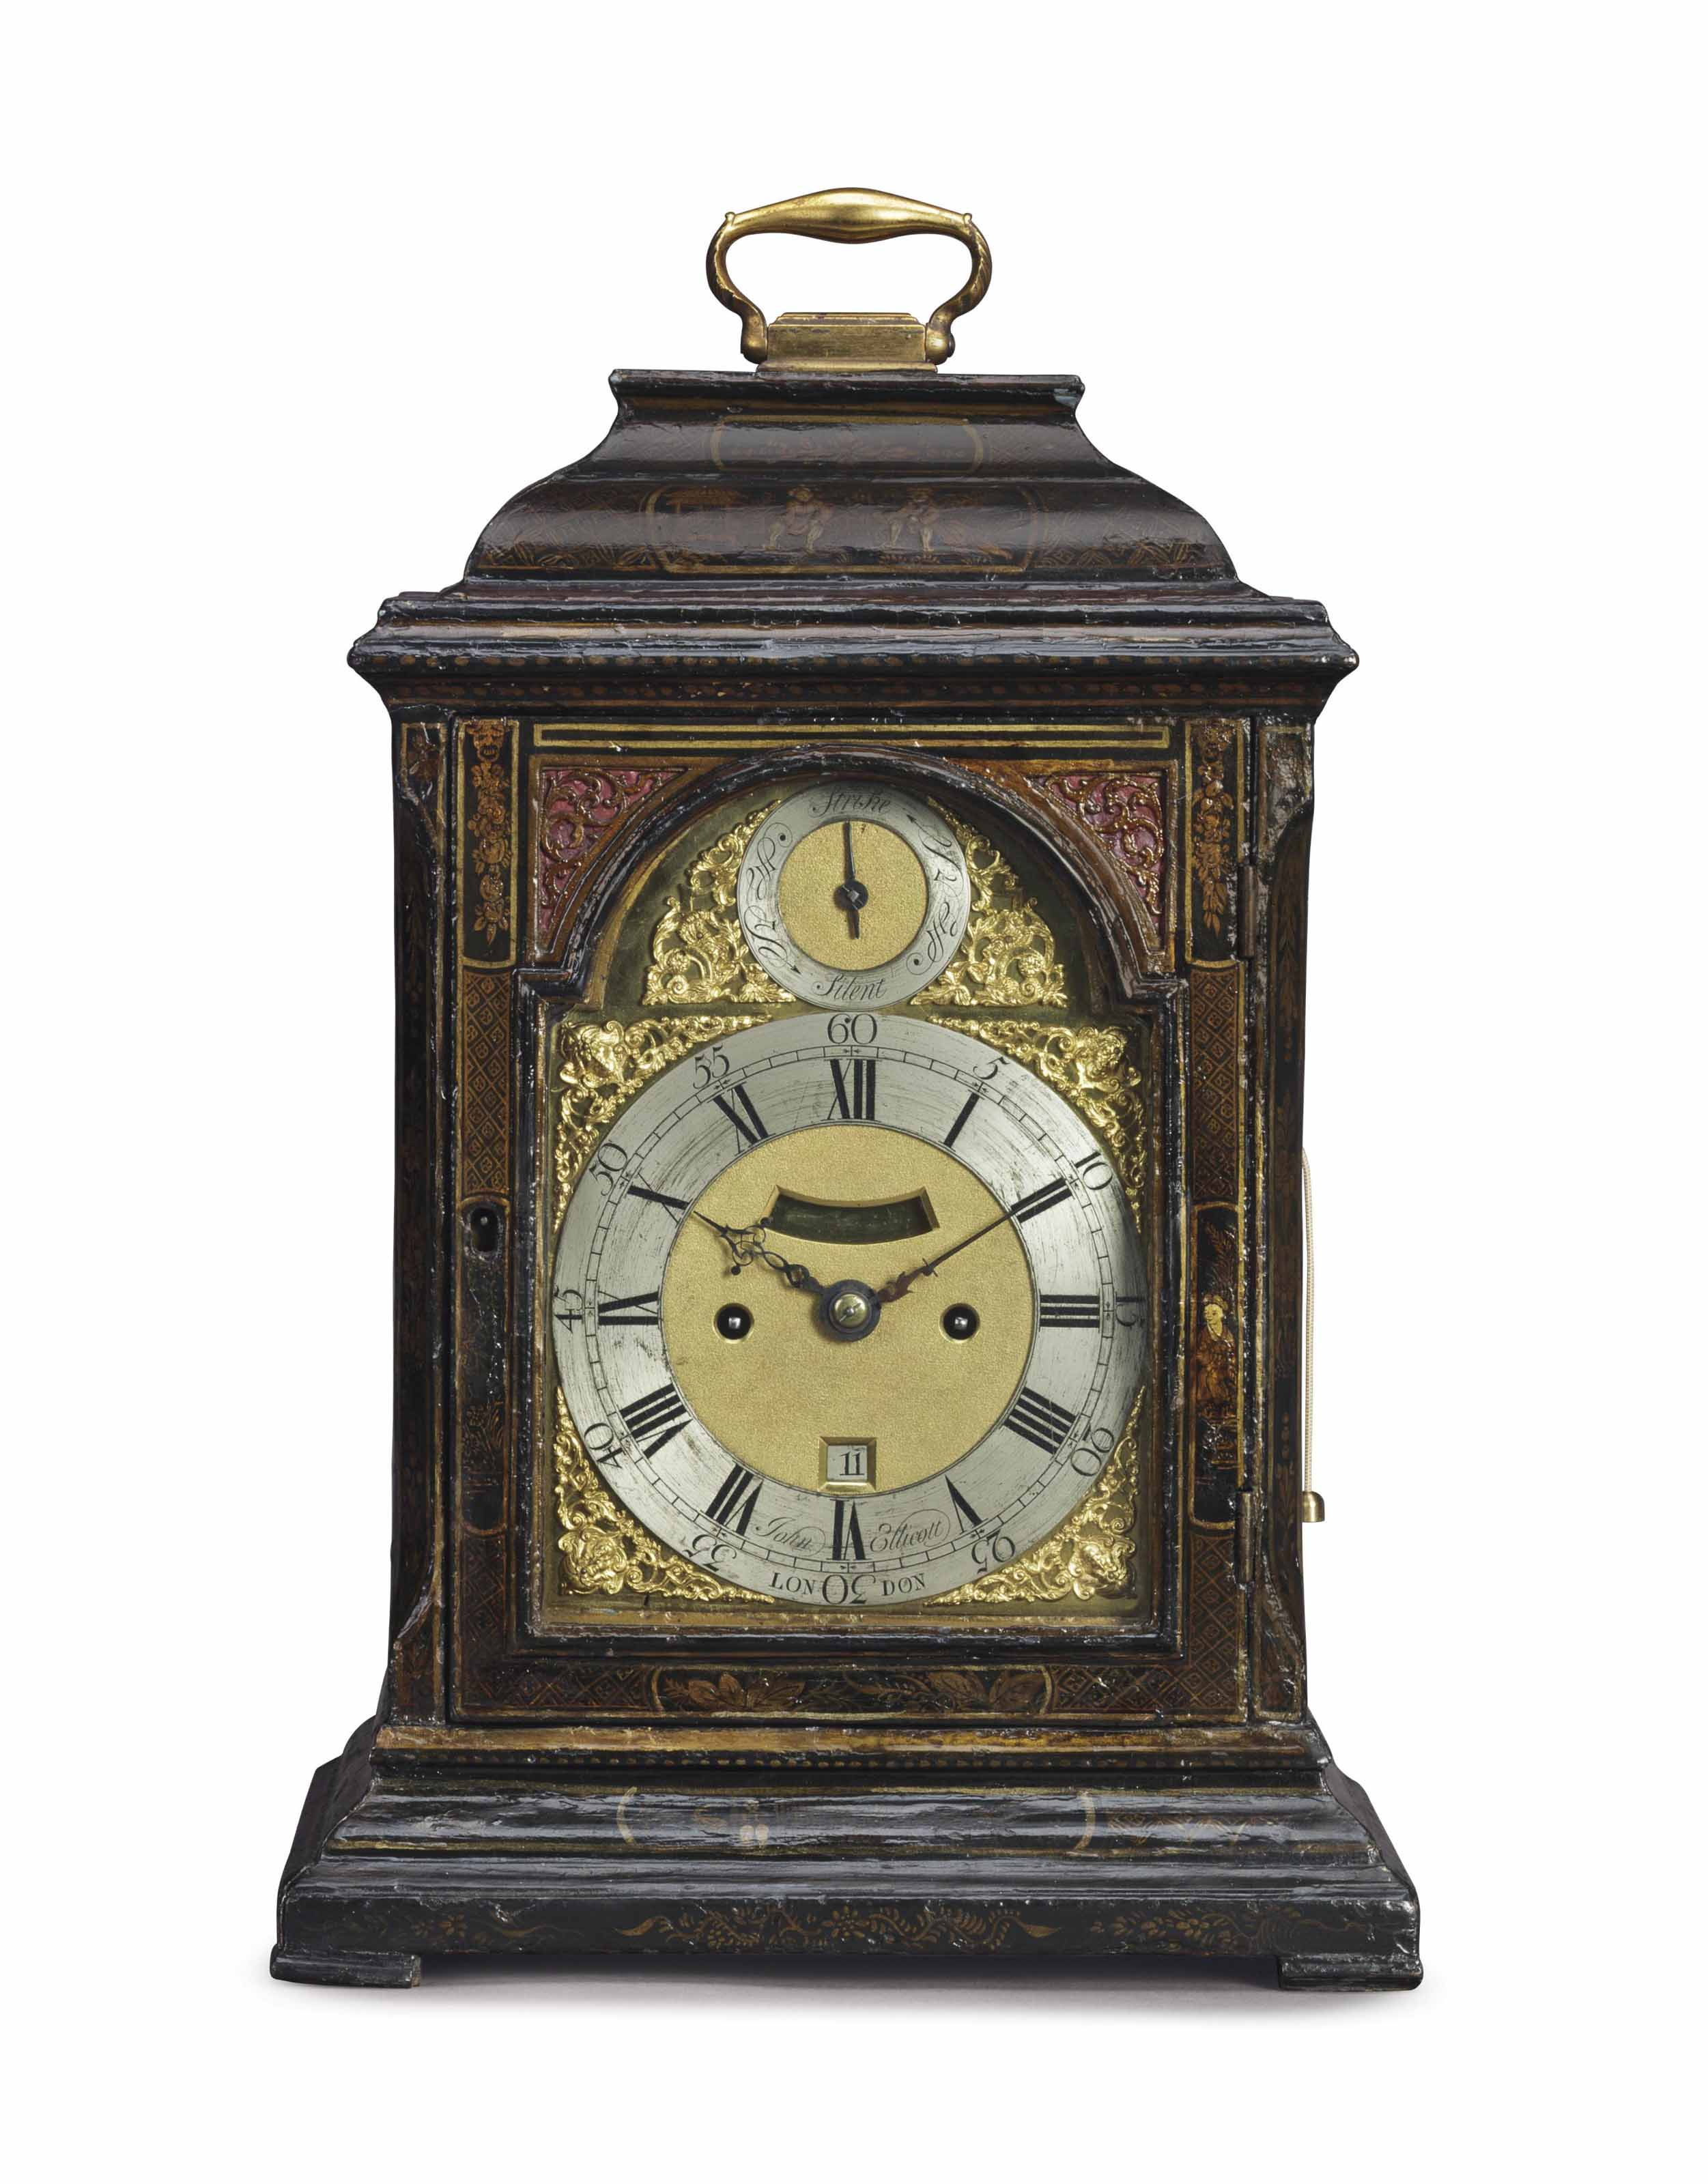 A GEORGE II GREEN AND GILT-JAPANNED STRIKING TABLE CLOCK